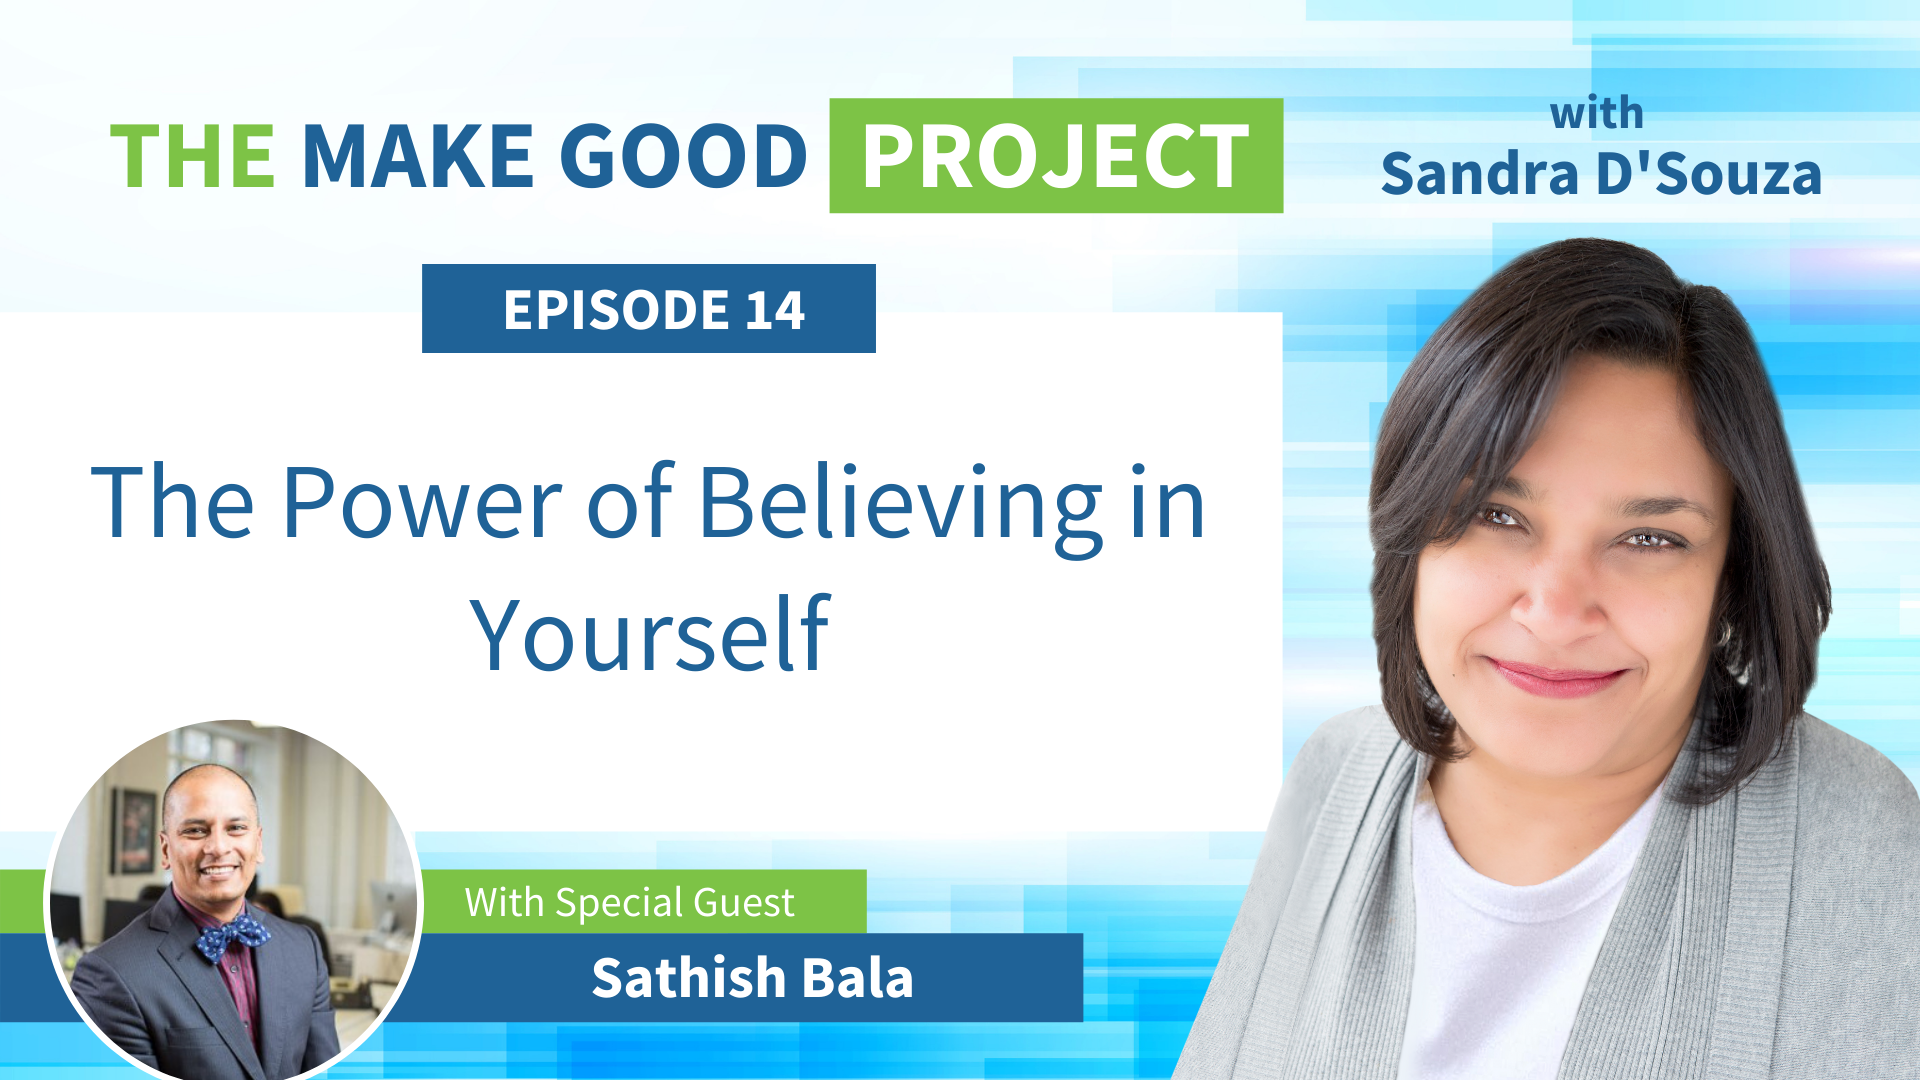 EP #14: The Power of Believing in Yourself with Sathish Bala